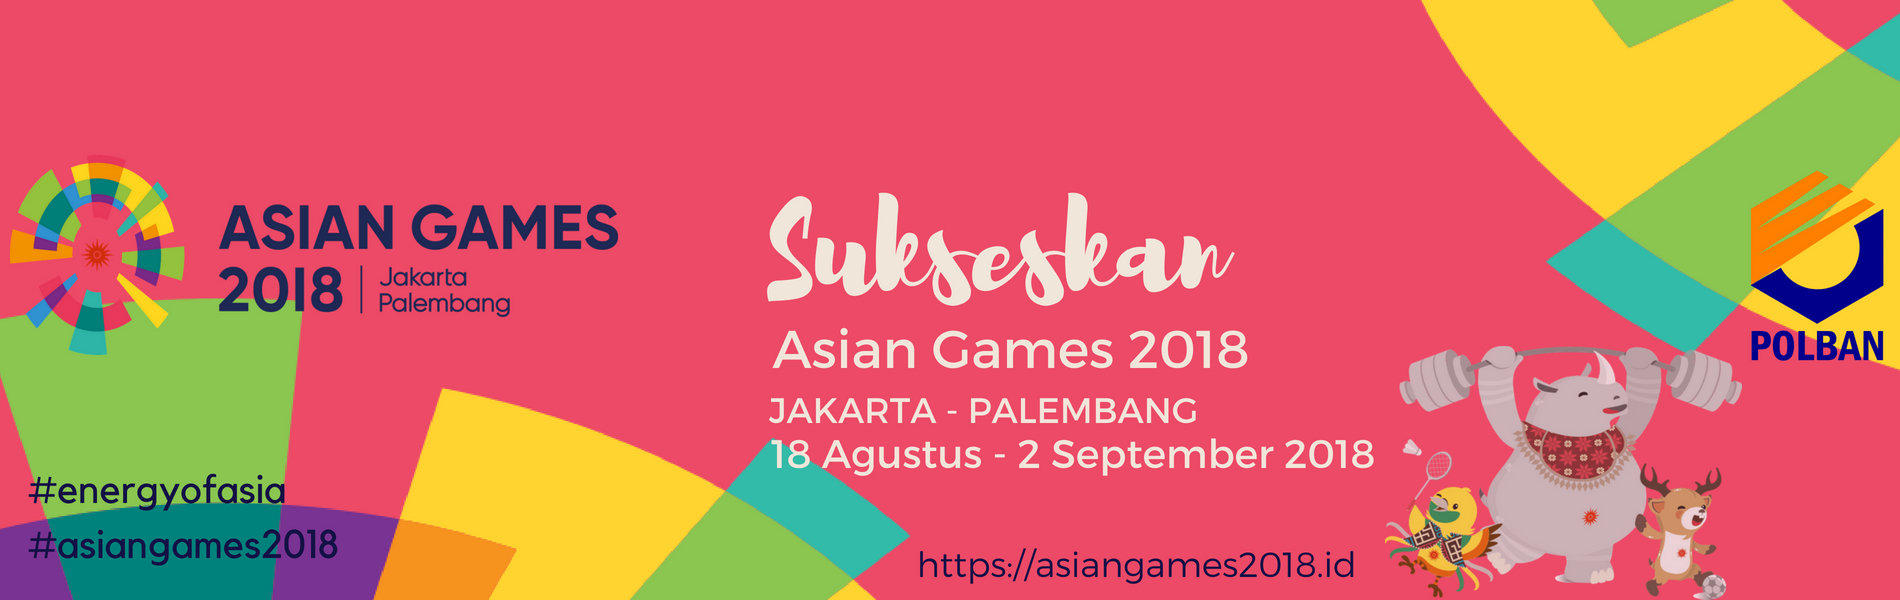 Sukseskan! ASIAN GAMES 2018